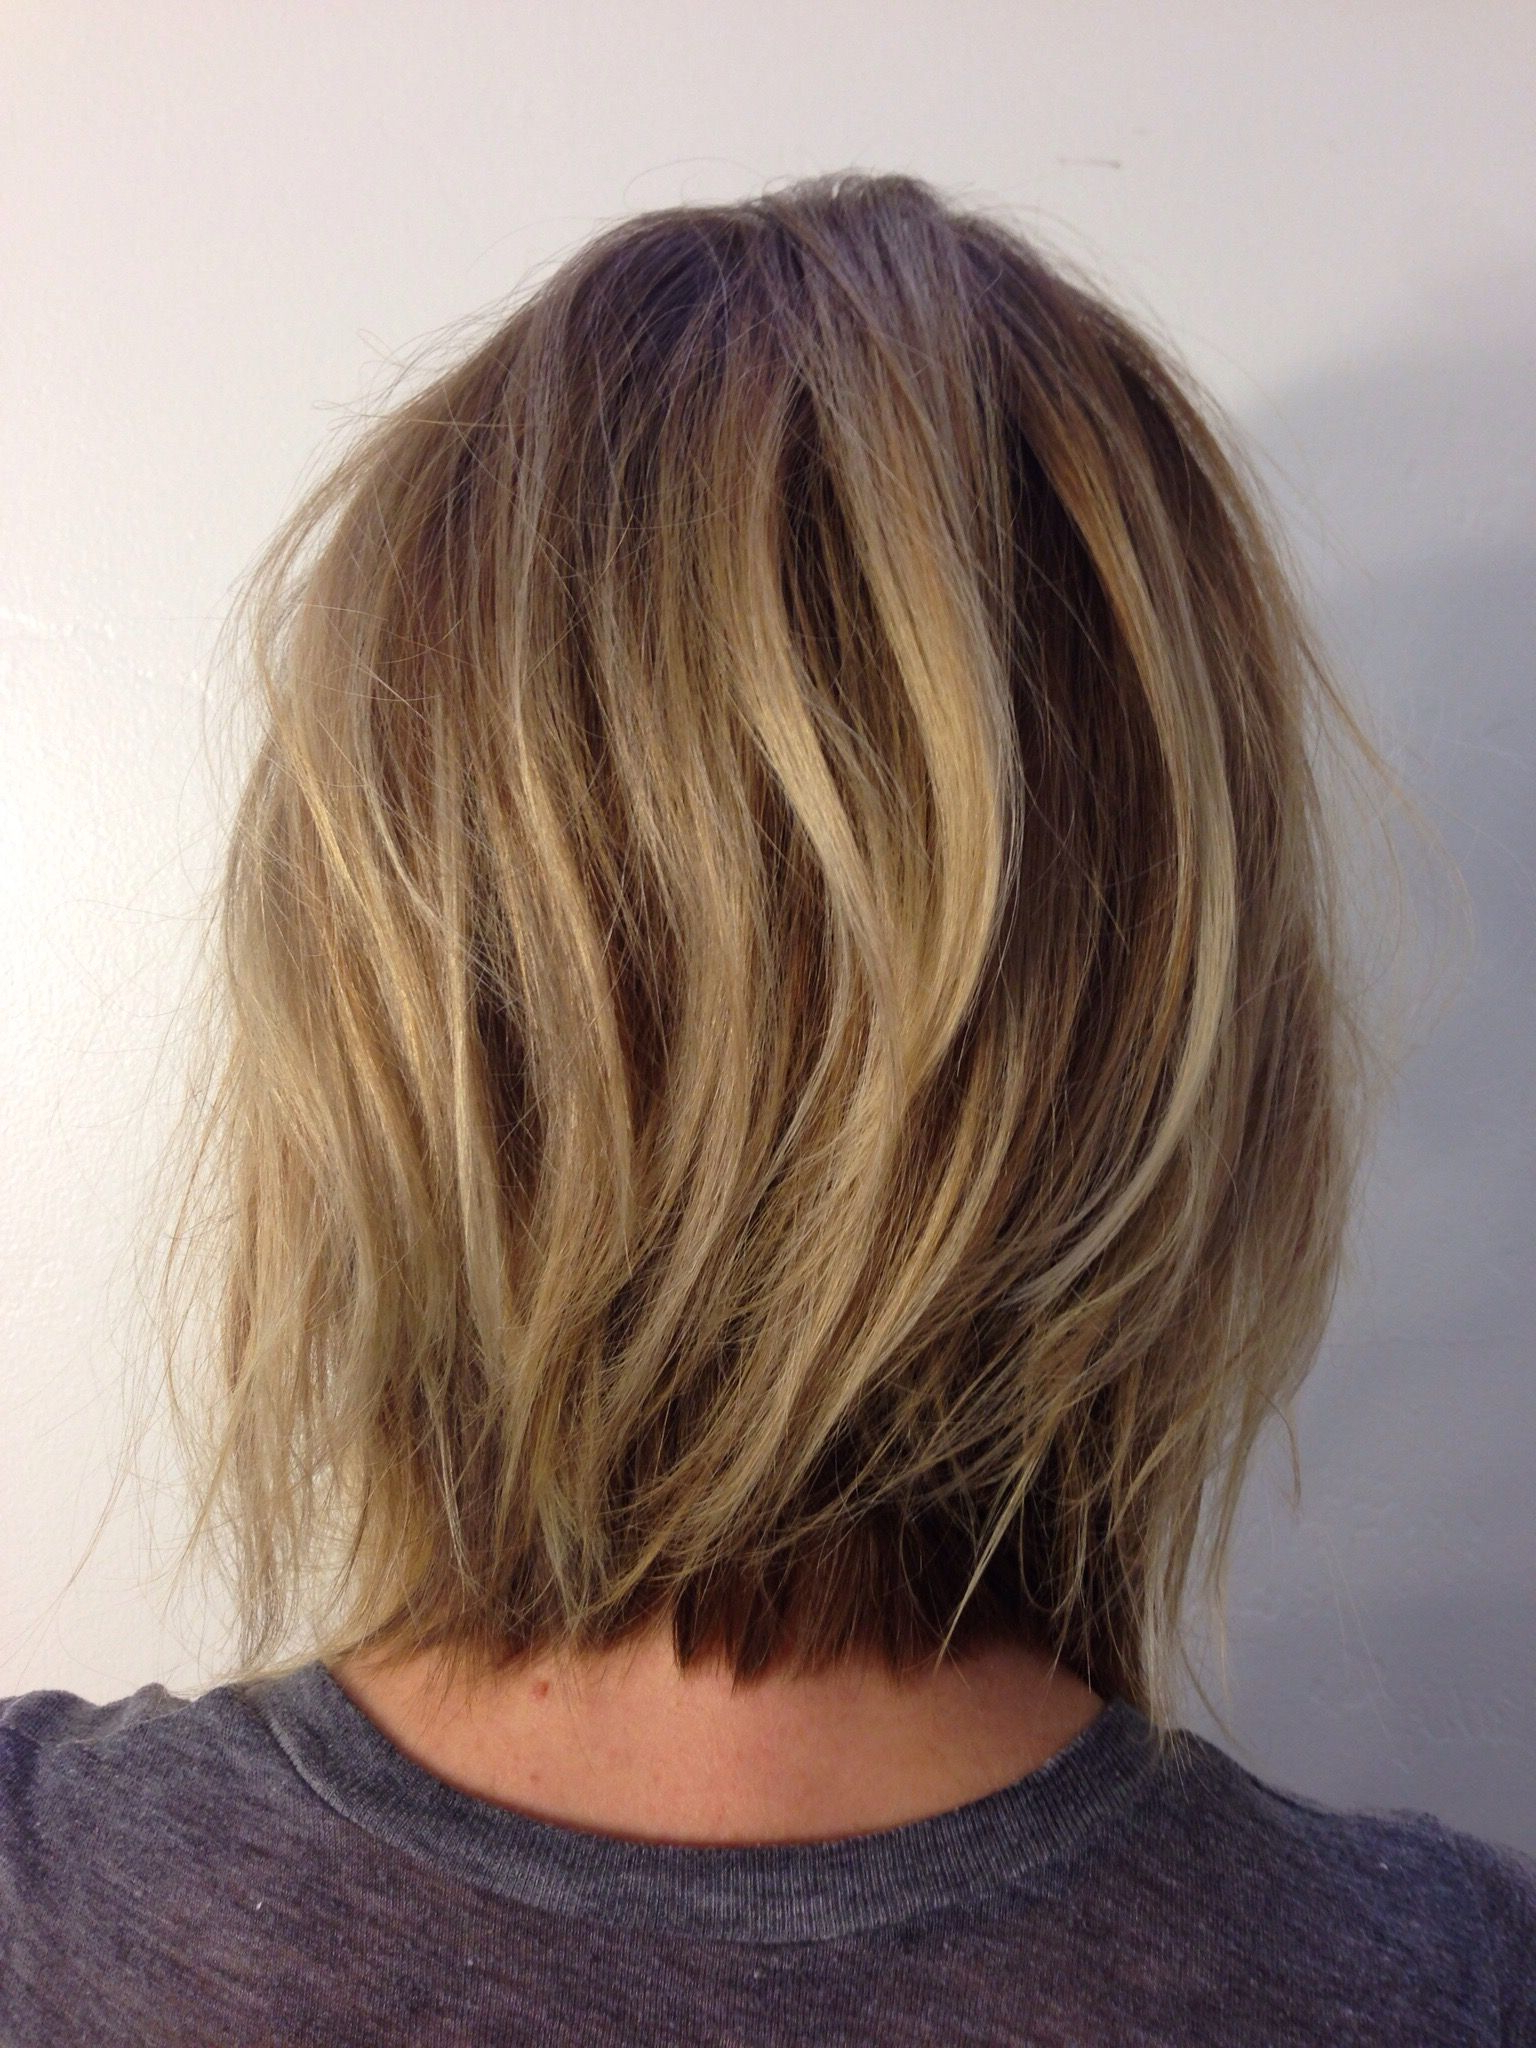 Andreamillerhair  Neck Length Layers … | Hair Cut In 2018… Inside Nape Length Blonde Curly Bob Hairstyles (Gallery 8 of 25)